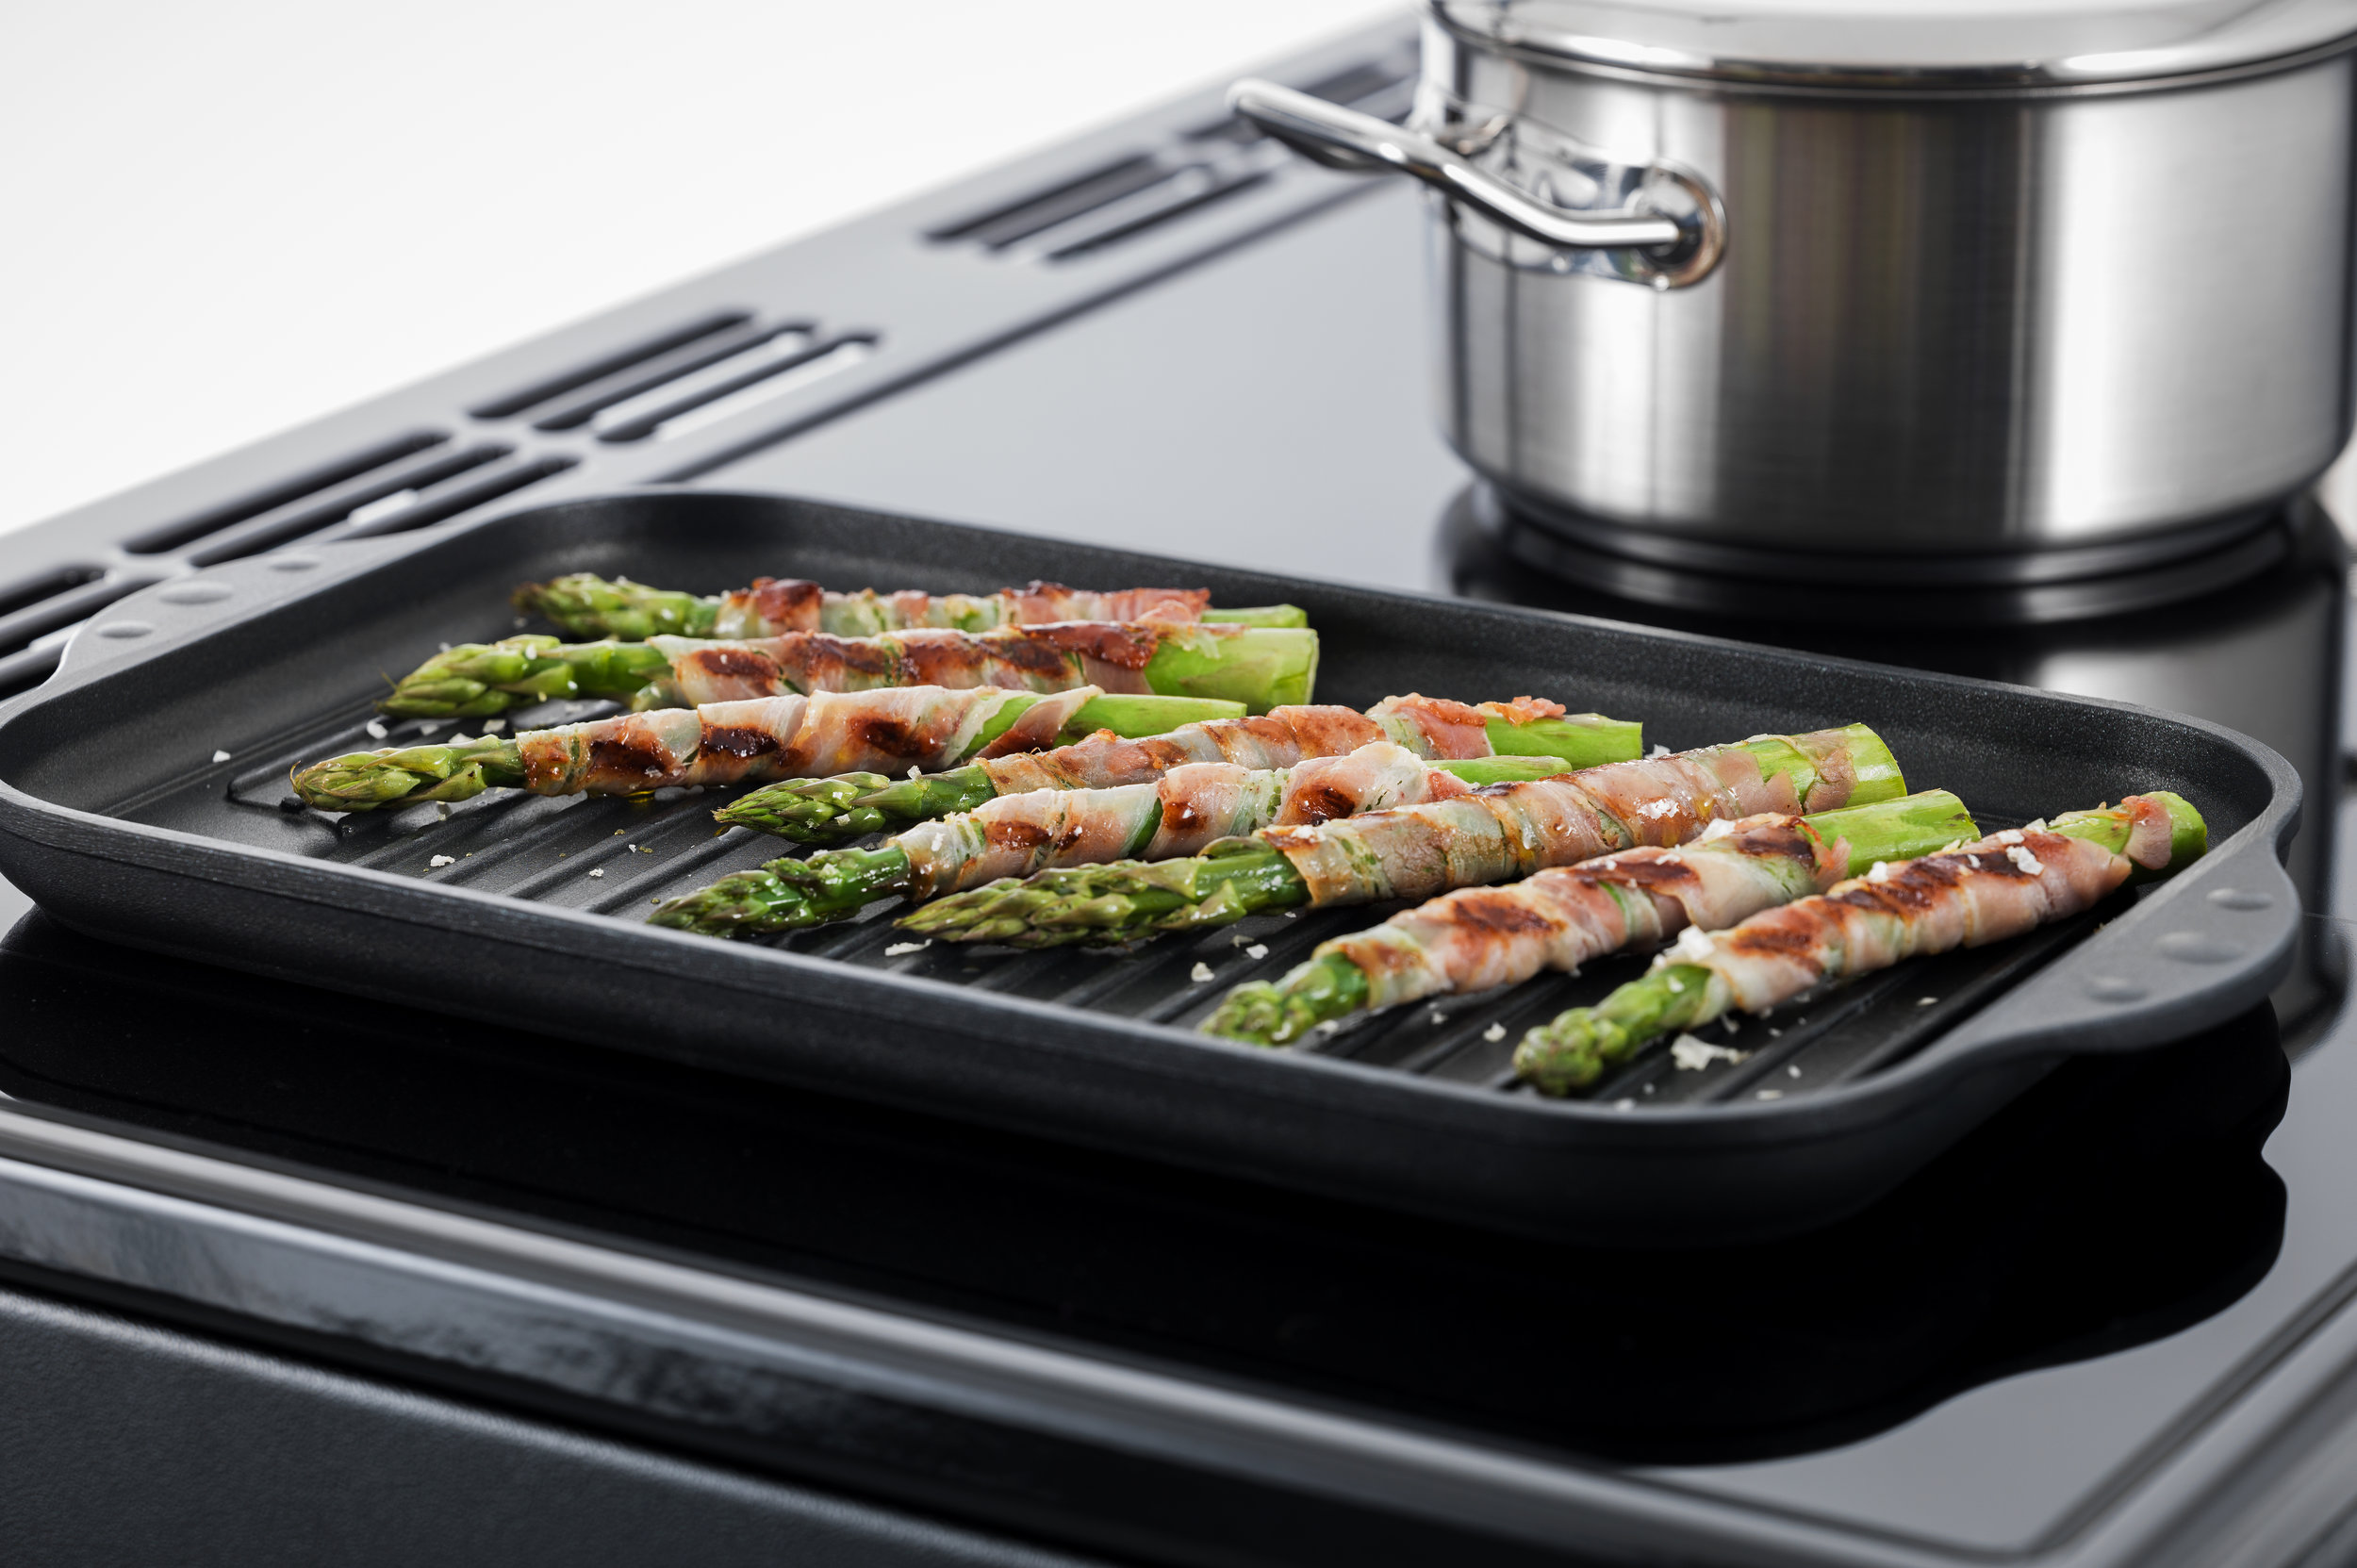 Masterchef 110 Cooker Aspagus griddle 02-1.jpg